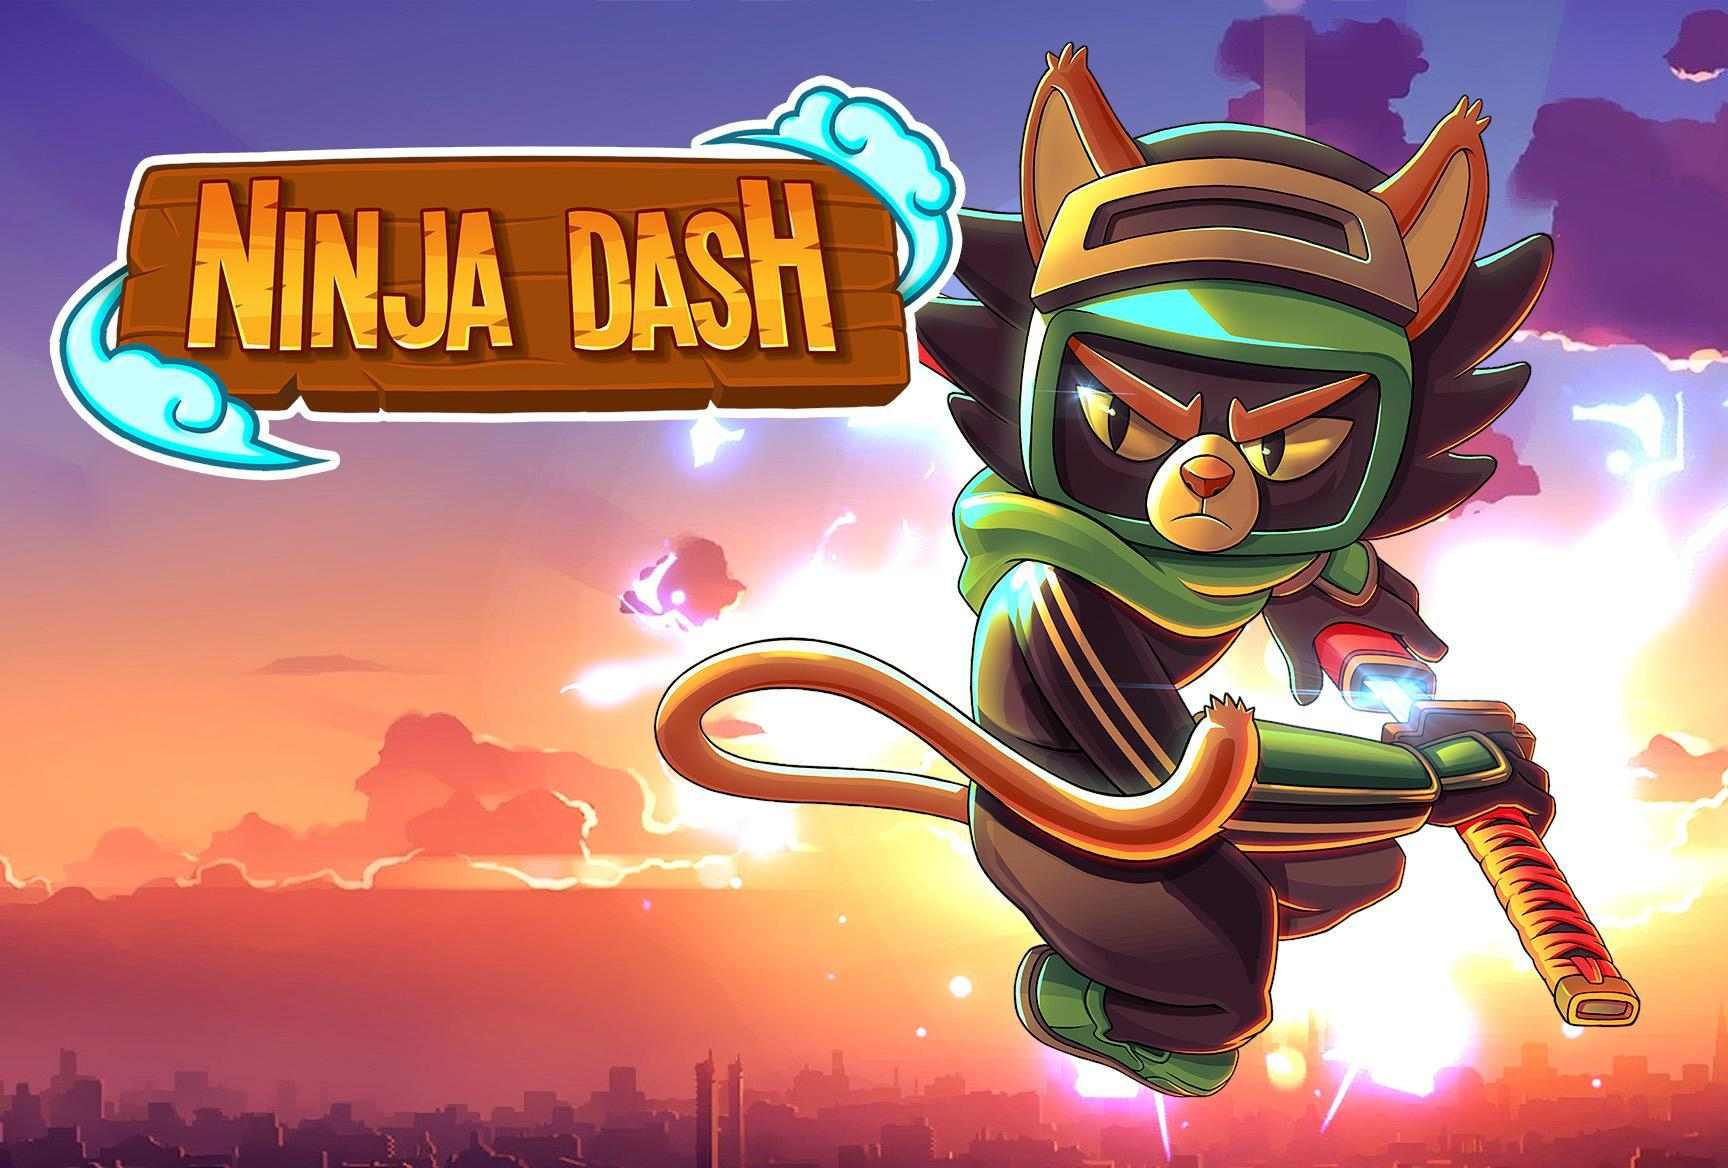 Ninja Dash Run - Epic Arcade Offline Games 2020 1.4.2 Screenshot 11